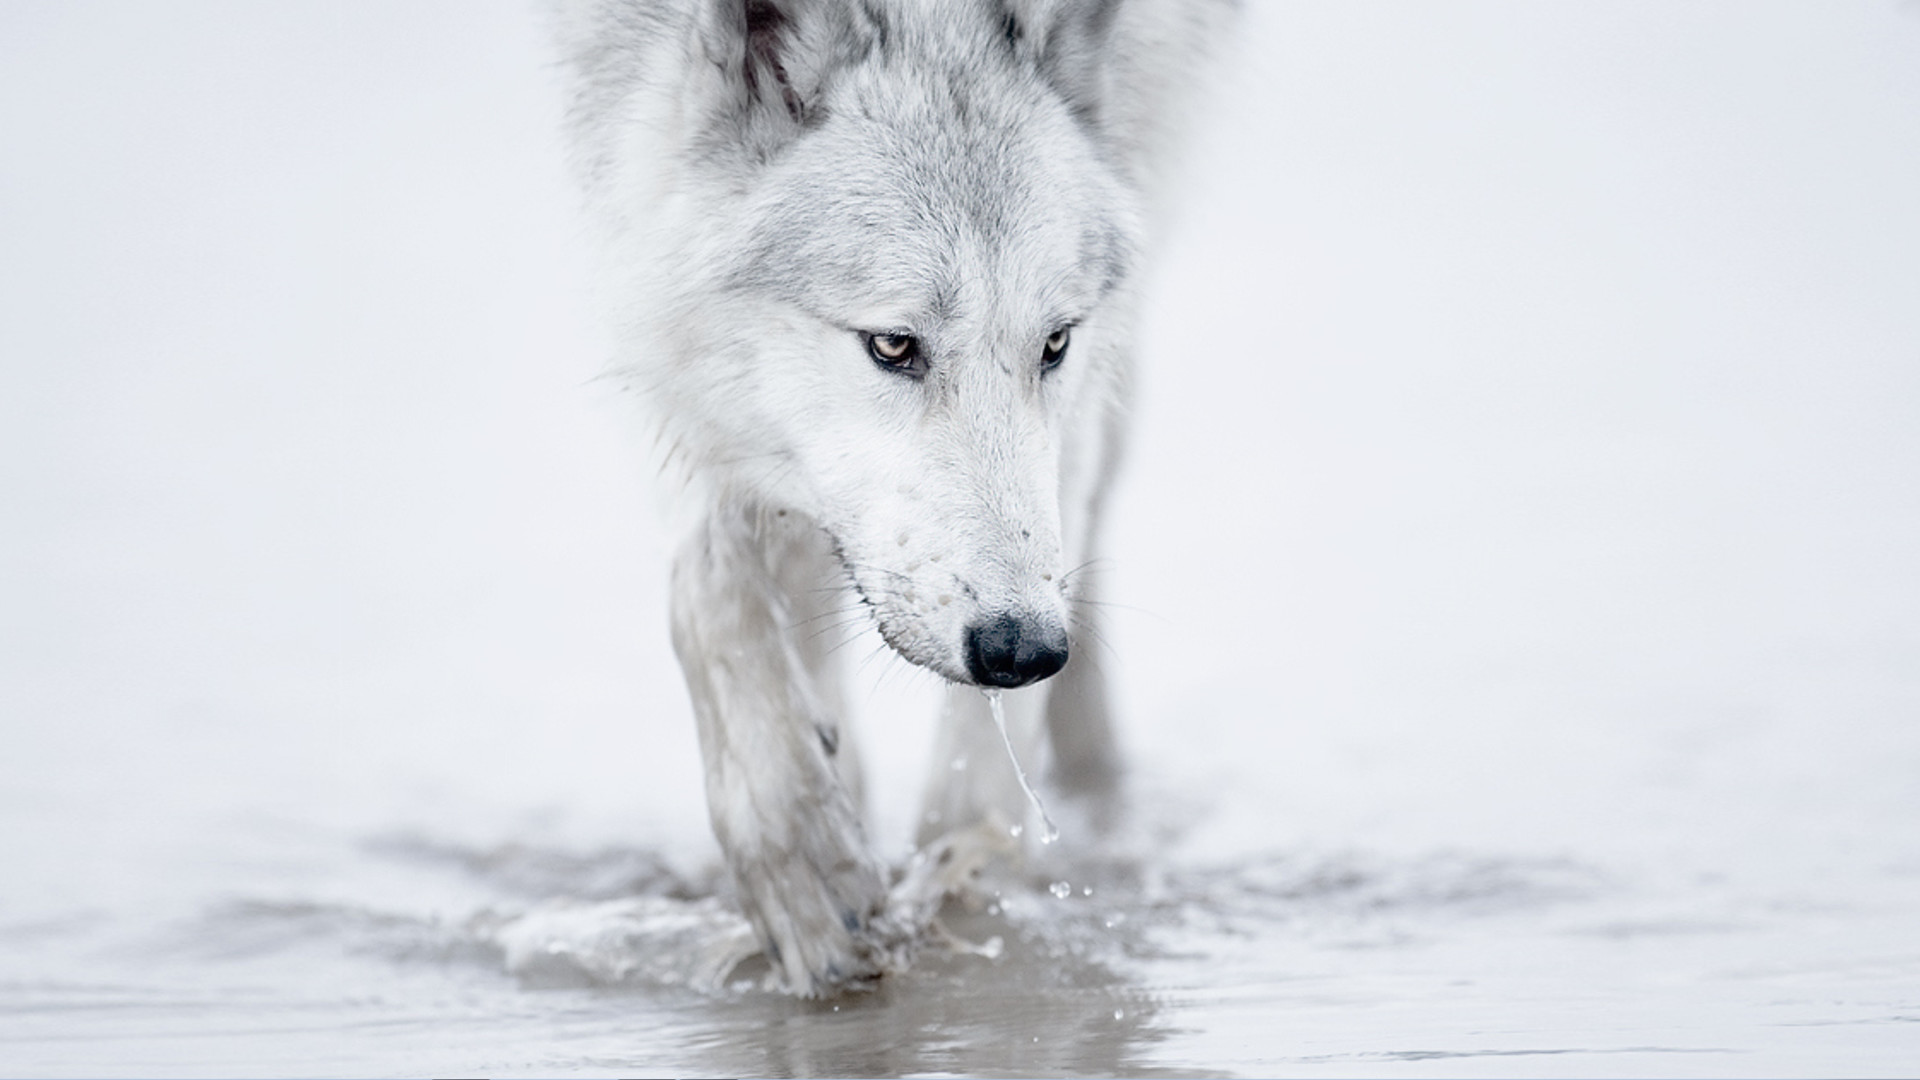 1920x1080 1000+ Images About Wolves On Pinterest | Gray Wolf, Wallpapers .